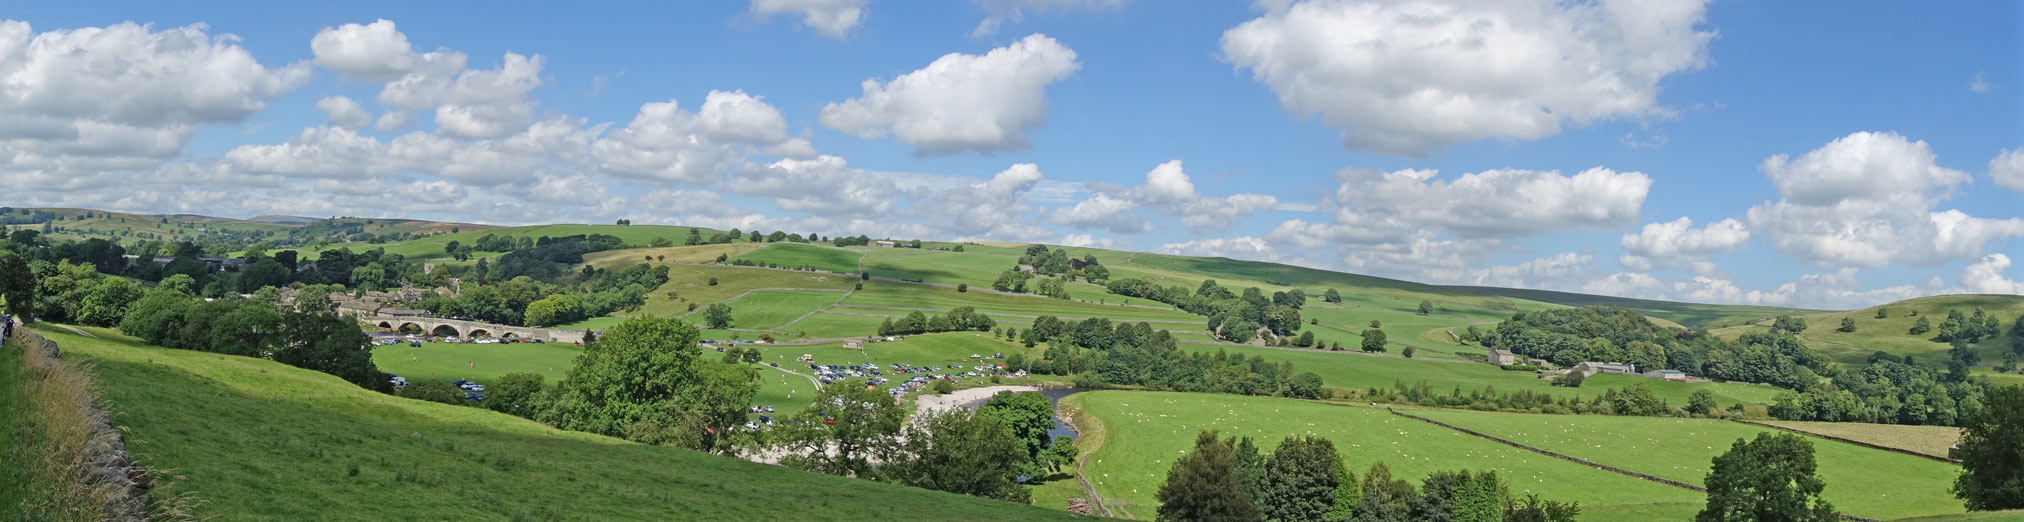 burnsall-panorama